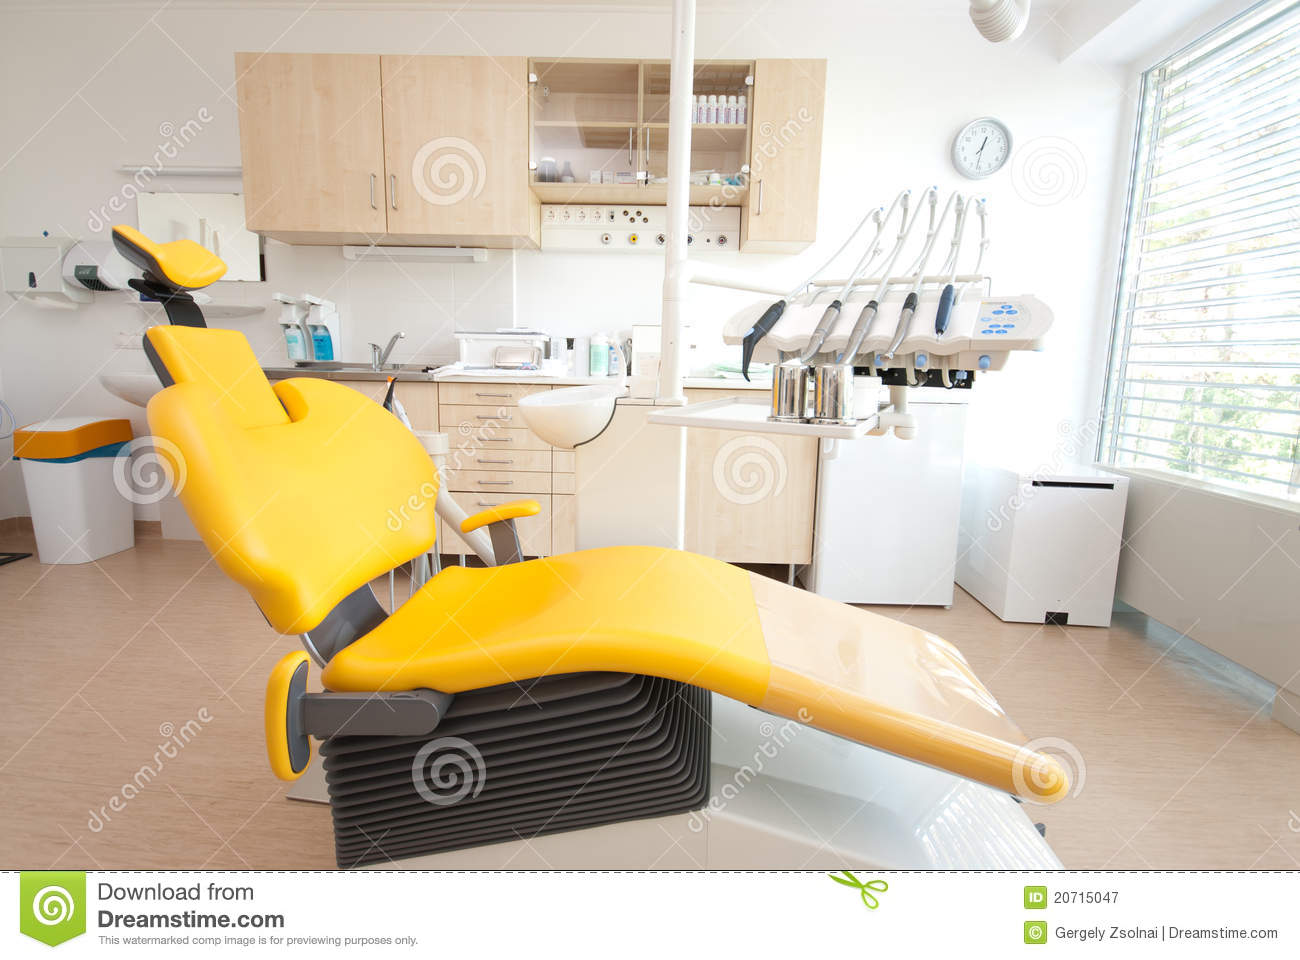 Dental Chair III.